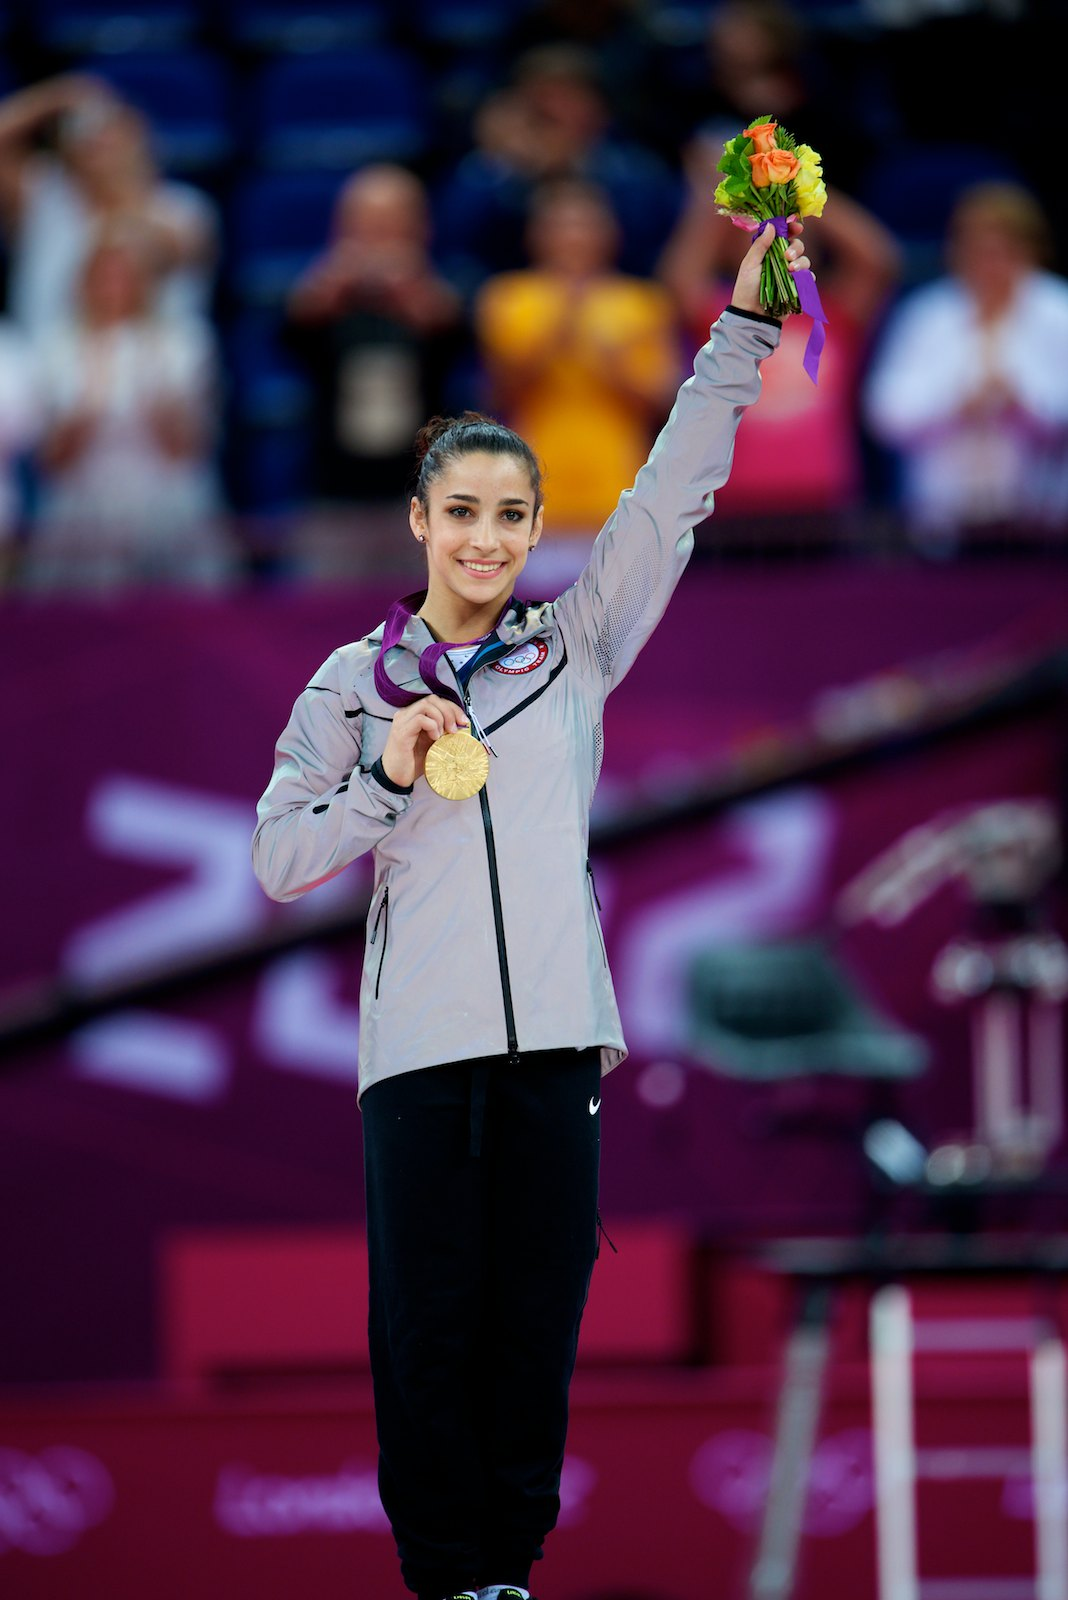 Aly Raisman - Member of the 2017 USA Gymnastics Hall of Fame class with the Final Five.2016 Olympic Games, Rio de Janeiro, Brazil - 1st-Team; 2nd-AA, FX2015 World Championships, Glasgow, Great Britain - 1st-Team2012 Olympic Games, London, England - 1st-Team, FX; 3rd-BB; 4th-AA2012 AT&T American Cup, New York, N.Y. - 2nd-AA2011 World Championships, Tokyo, Japan - 1st-Team; 3rd-FX; 4th-AA, BB2011 AT&T American Cup, Jacksonville, Fla. - 3rd-AA2010 World Championships, Rotterdam, Netherlands - 2nd-Team; 4th-FX2010 Pacific Rim Championships, Melbourne, Australia - 1st-Team; 2nd-AA, BB, FX; 7th-UB2010 Tyson American Cup, Worcester, Mass. - 2nd-AA2009 Junior Pan American Championships, Aracaju, Brazil - 1st-Team, VT, FX; 3rd-AA